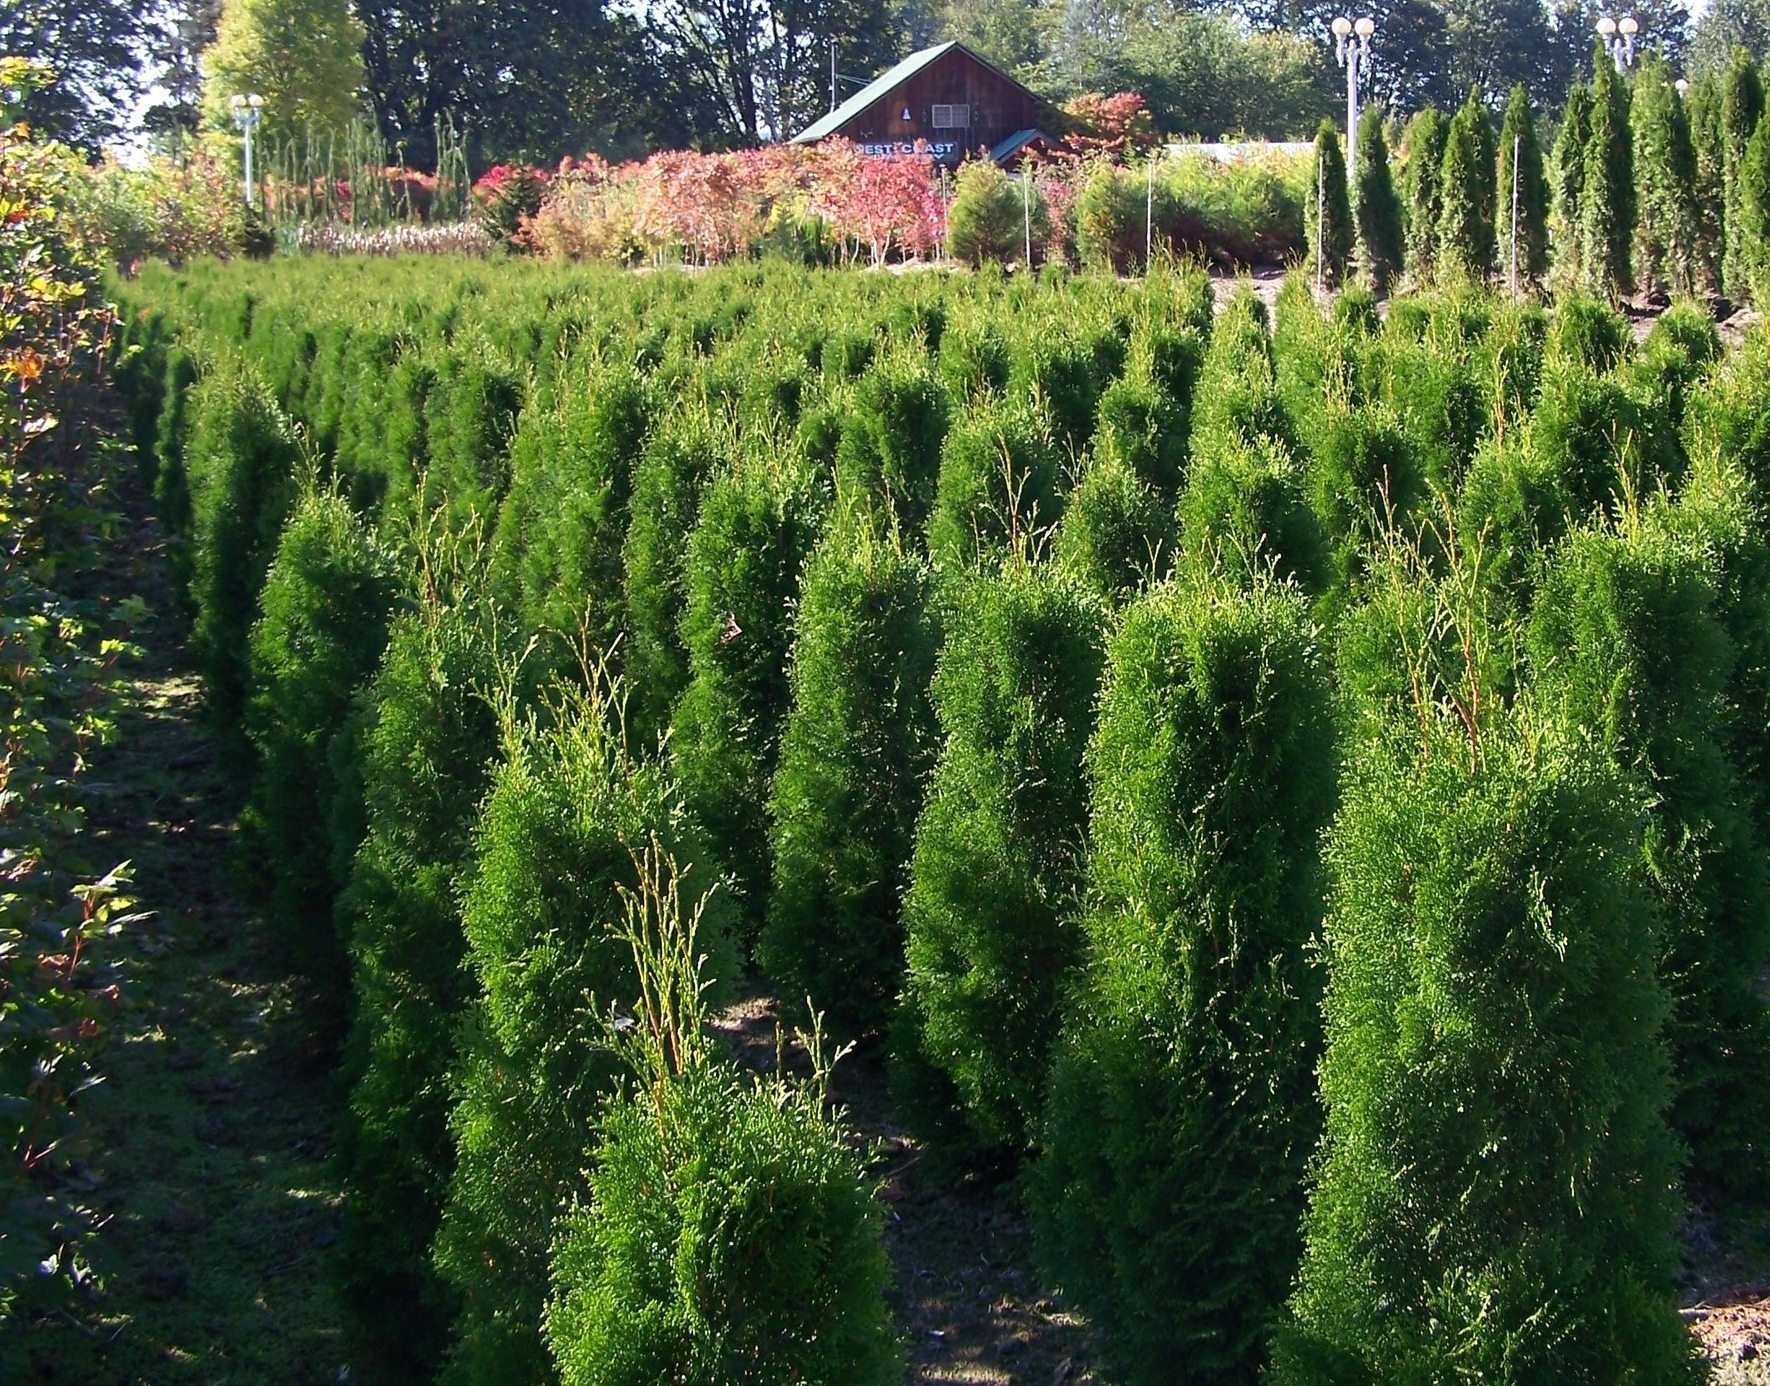 Open to the Public - For more than 25 years, we have been growing conifers, flowering and shade trees, and privacy hedges appropriate for Western and Eastern Washington and carry a range of Northwest grown container perennials to complete your garden project. We specialize in growing Japanese Maples, Red Maples, Katsura, Stewartia, Dogwoods, Excelsa Cedar, Hinoki Cypress, Laurels, Emerald Green Arborvitae, and many more!